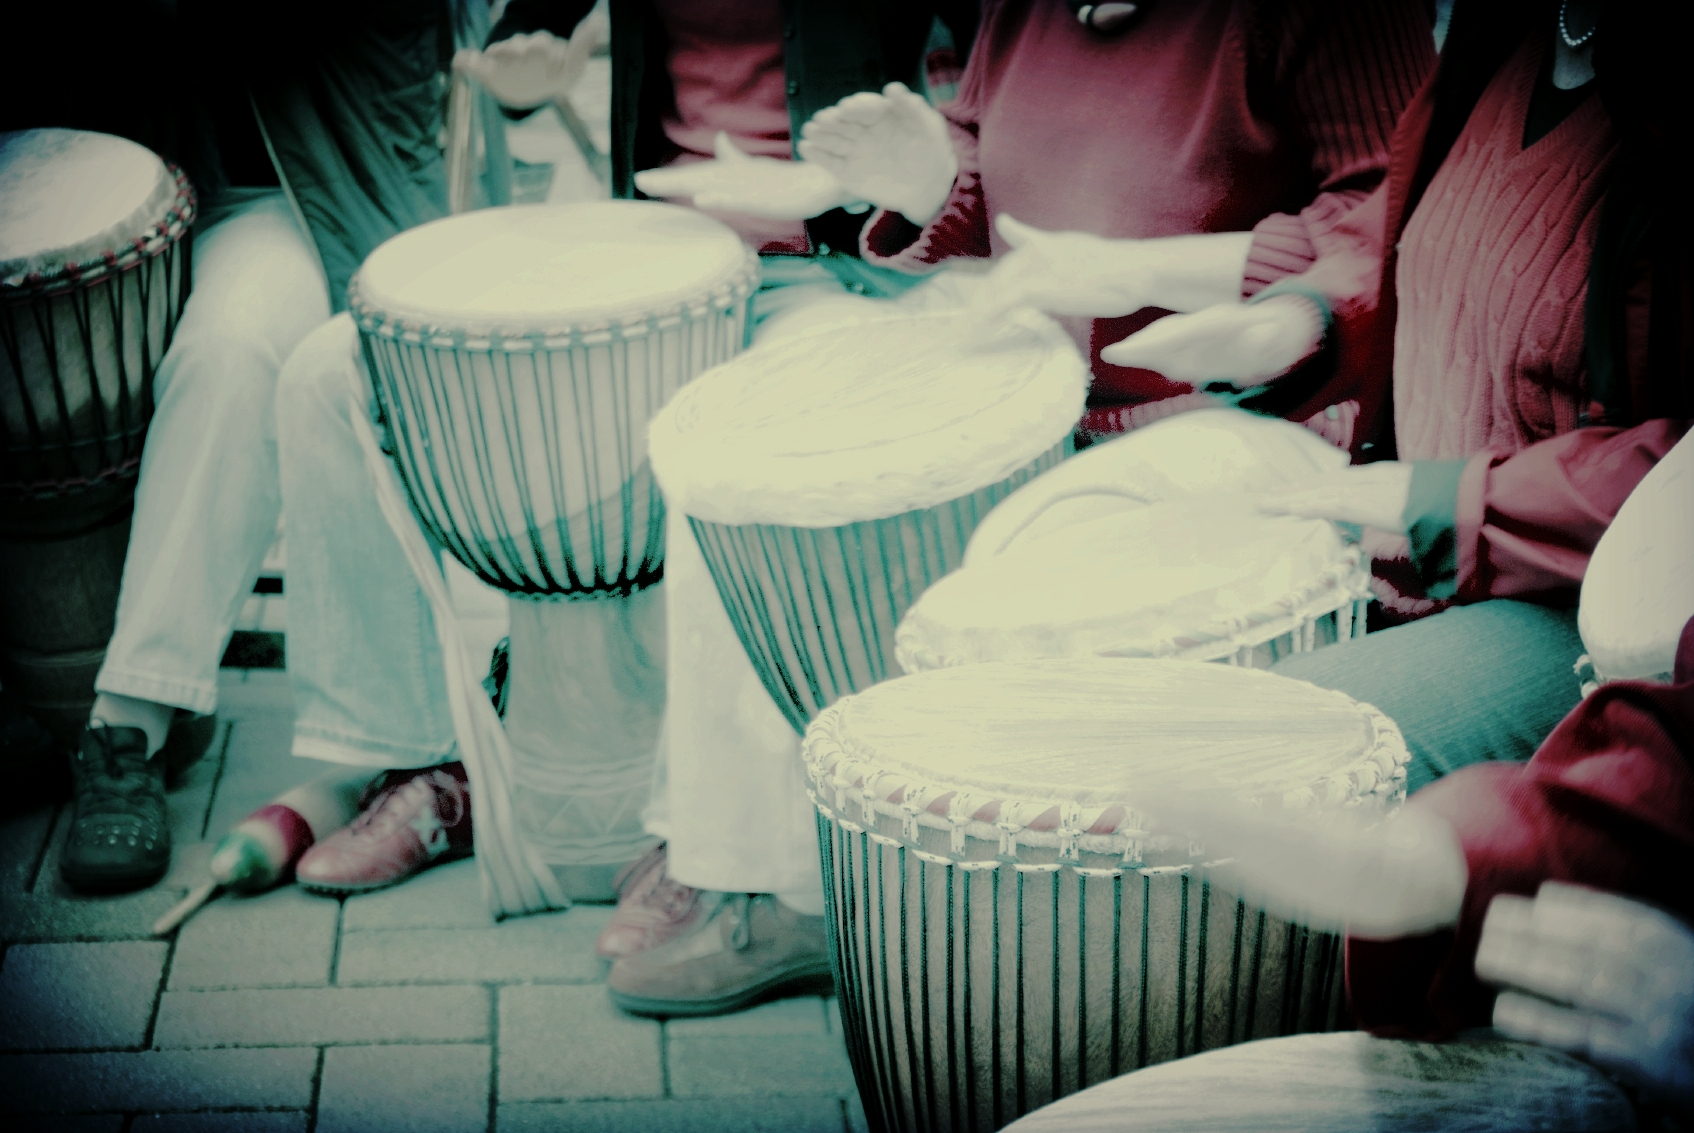 Drum Circle Experience - Exploration Session: Sat, Aug 26th 12:00-1:00pm @ Round Rock MusicOld Settlers Performance: Sat, Sept 2nd 12:00-2:00pm in Old Settlers ParkOPEN TO ALL STUDENTS! Come and explore the sounds and rhythms of hand percussion and play in a improvised ensemble.  A Drum circle does not have written music to lean, but rather learning to listen and explore rhythmic improvisation in a group.  NO EXPERIENCE NECESSARY!